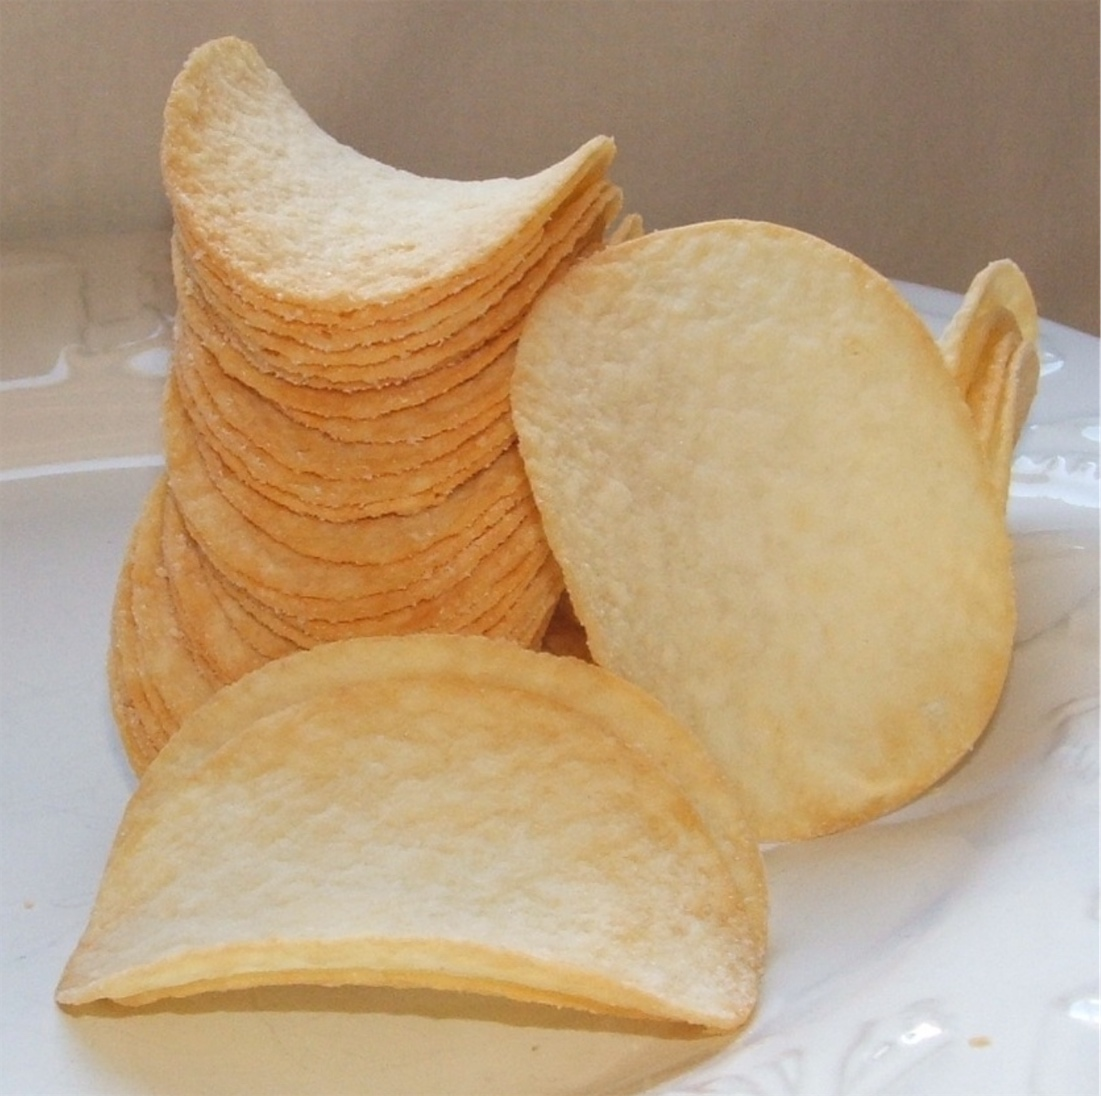 Mathematicians analyze the geometries of the Pringle | Boing Boing